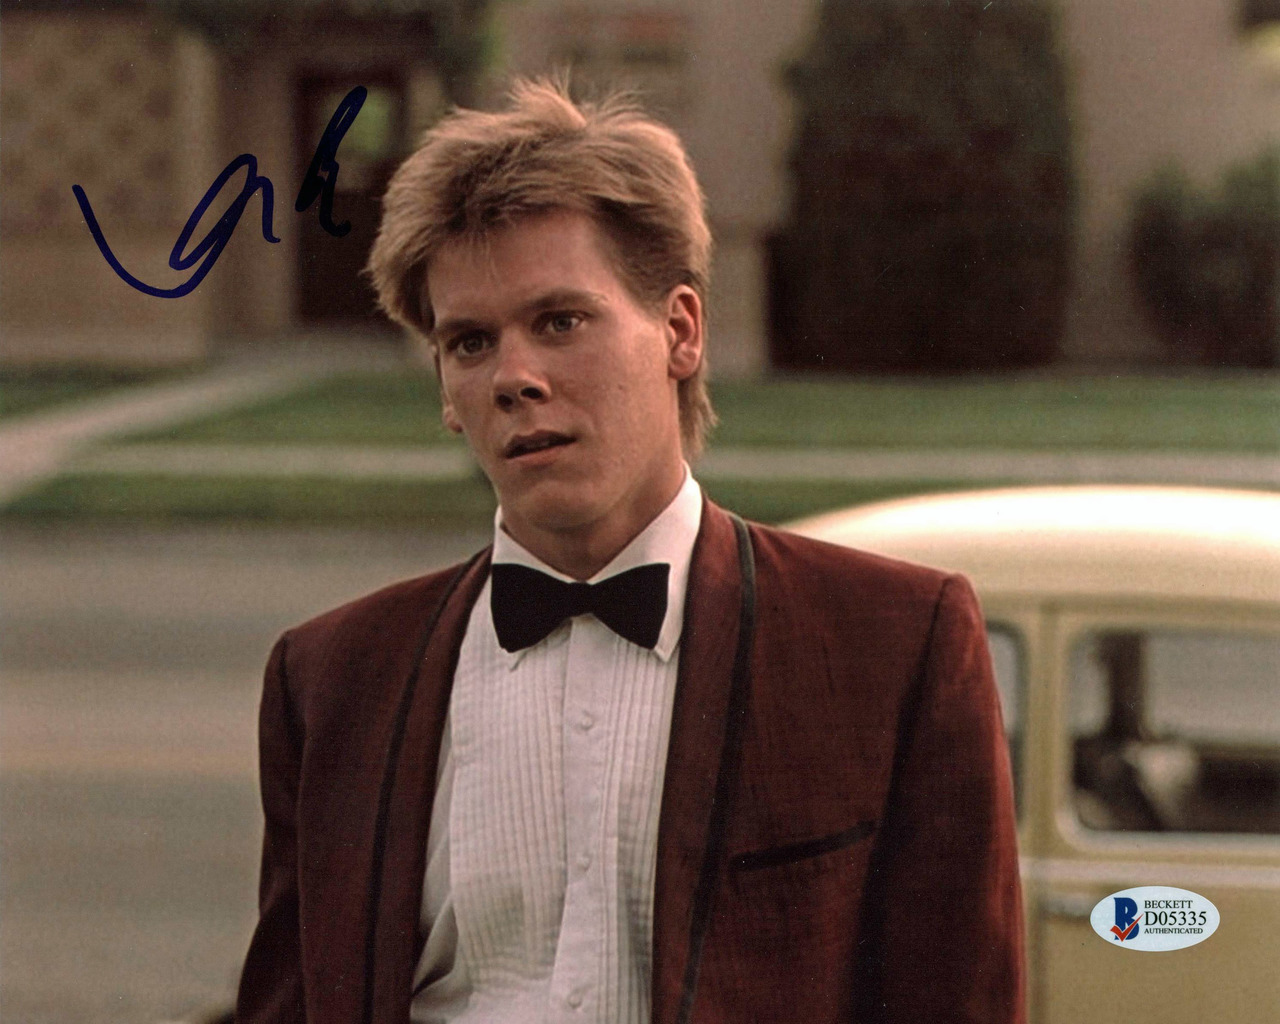 Kevin Bacon Footloose Authentic Signed 8x10 Photo Autographed 1280x1024